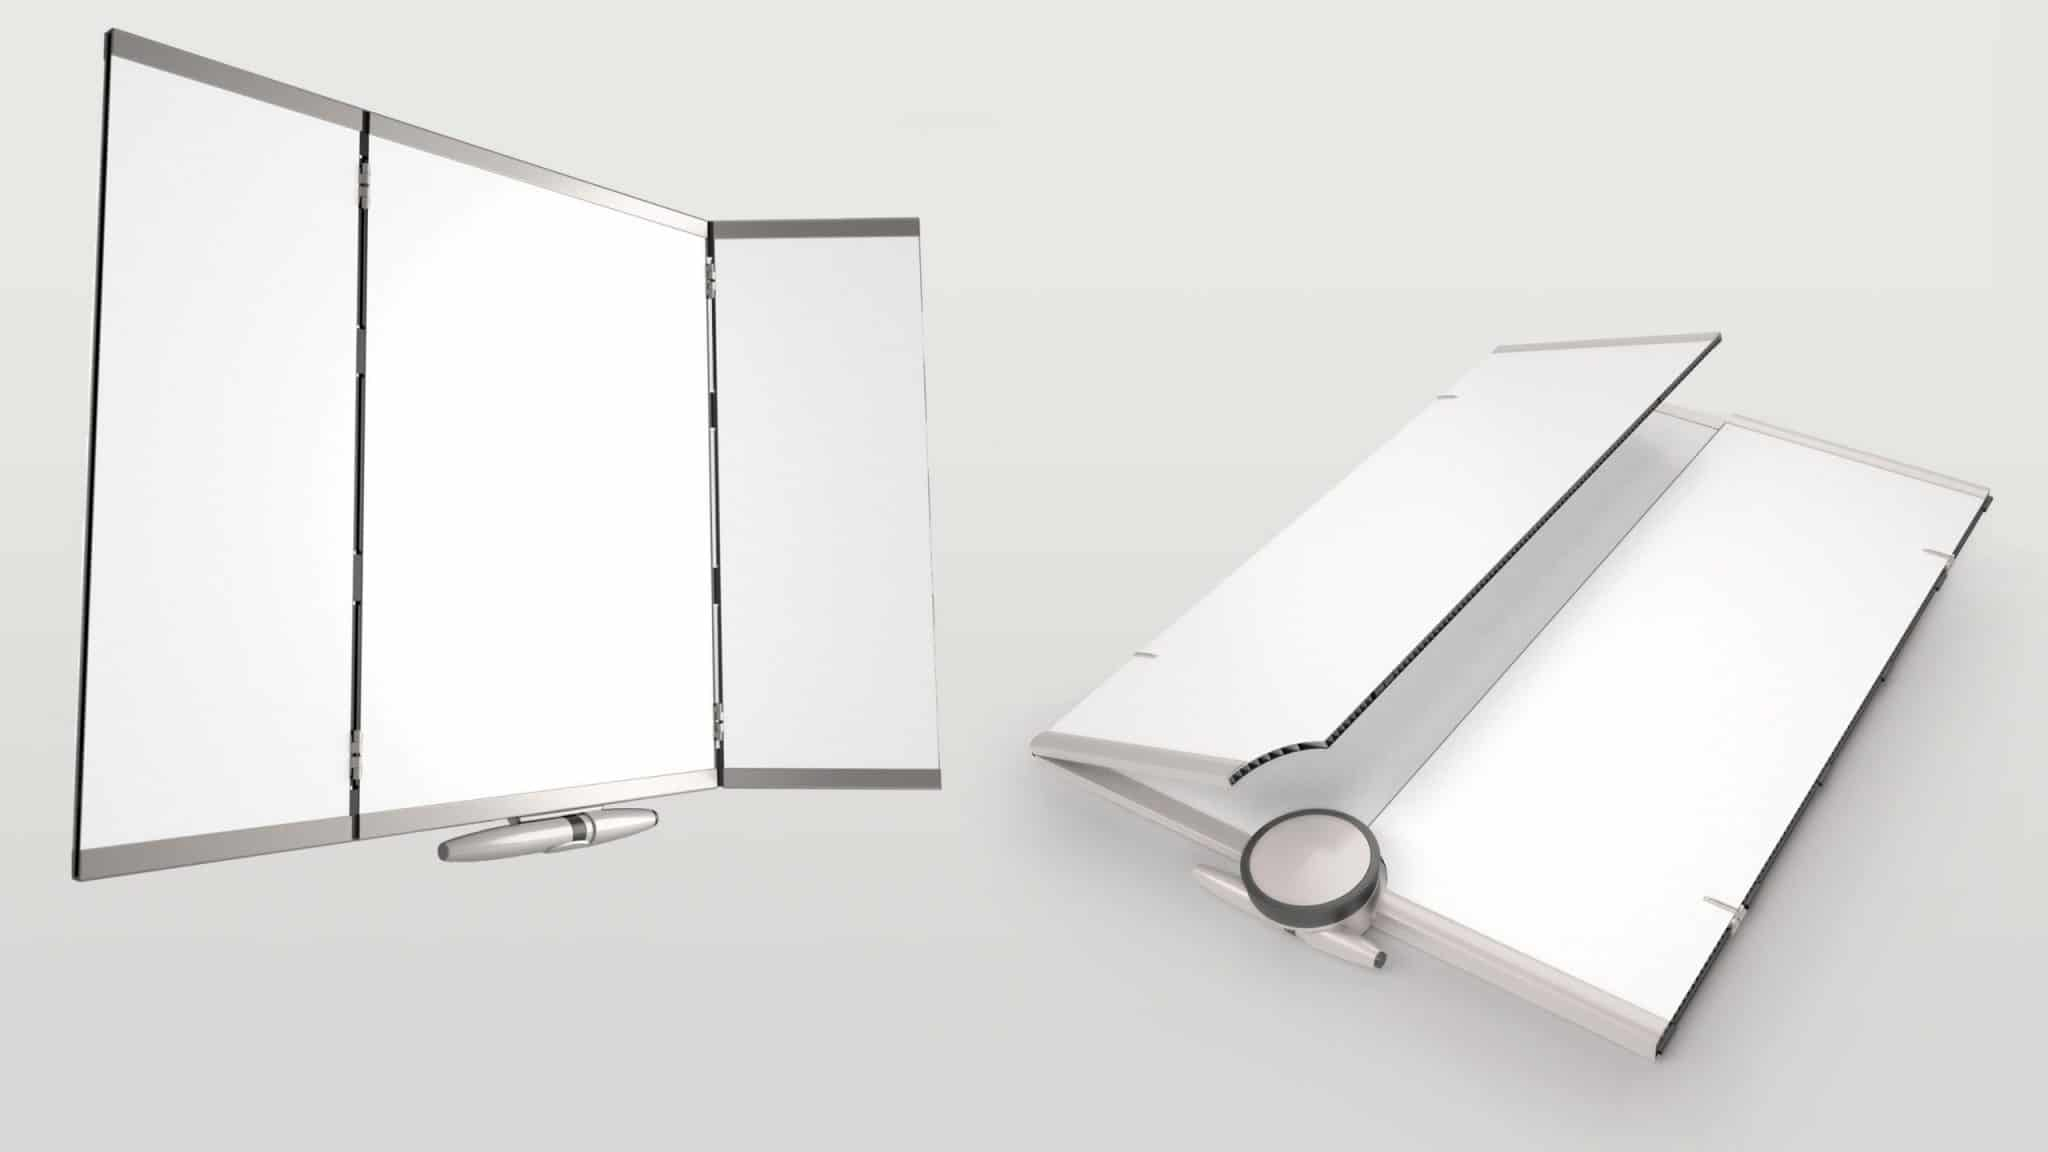 Tenex Trifold White Board Opened and Closed